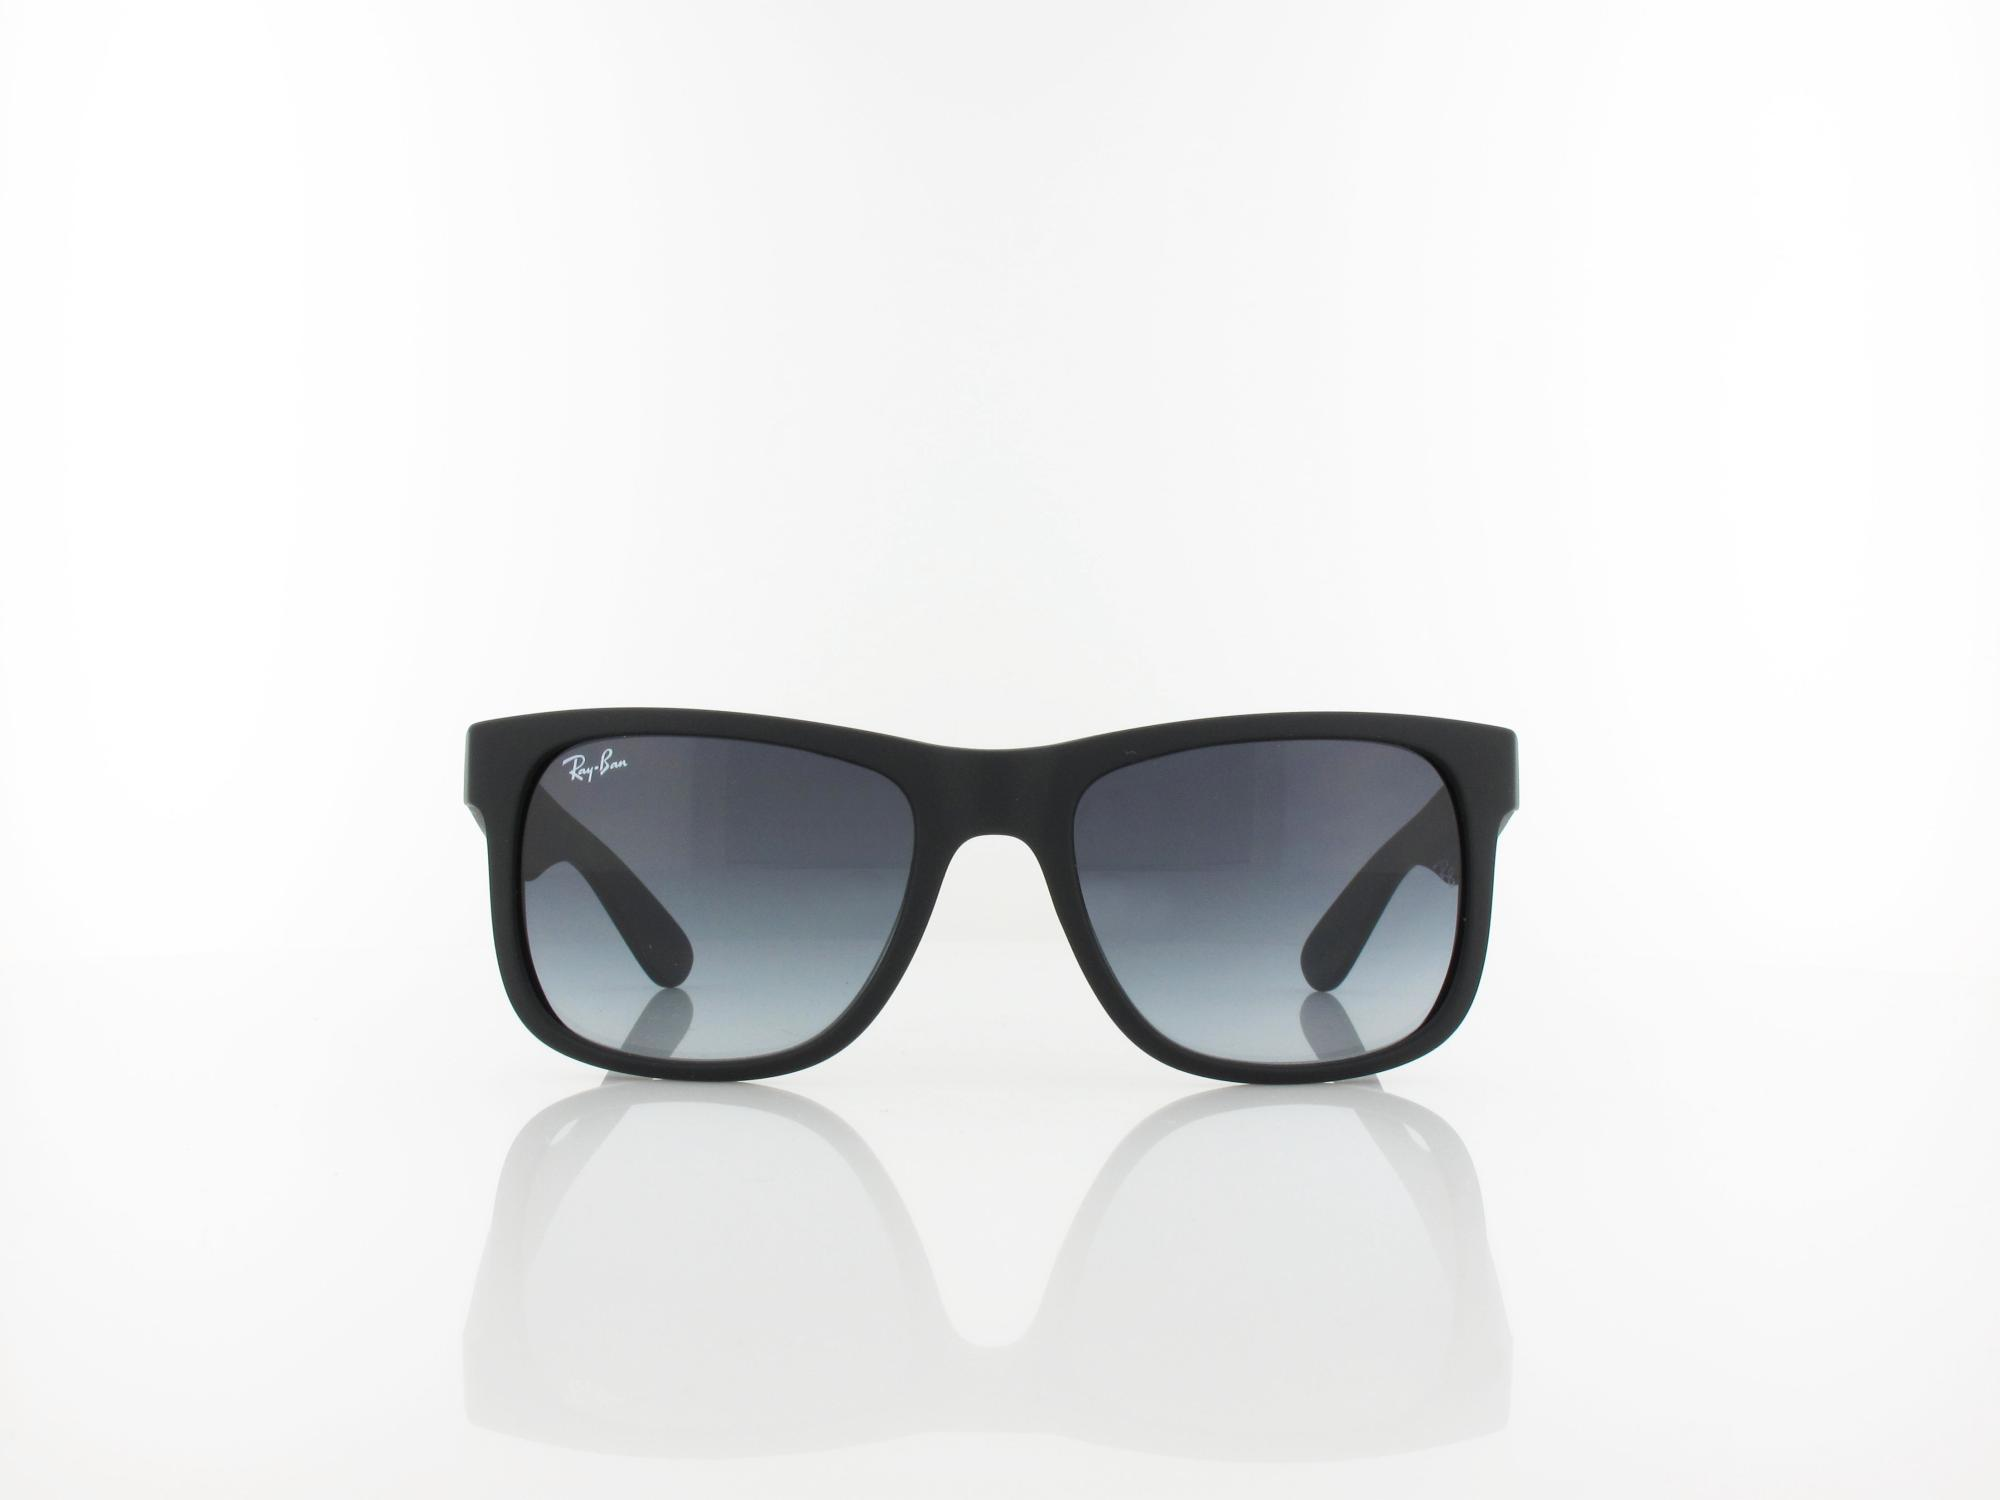 Ray Ban | Justin RB4165 601/8G 51 | rubber black / grey gradient